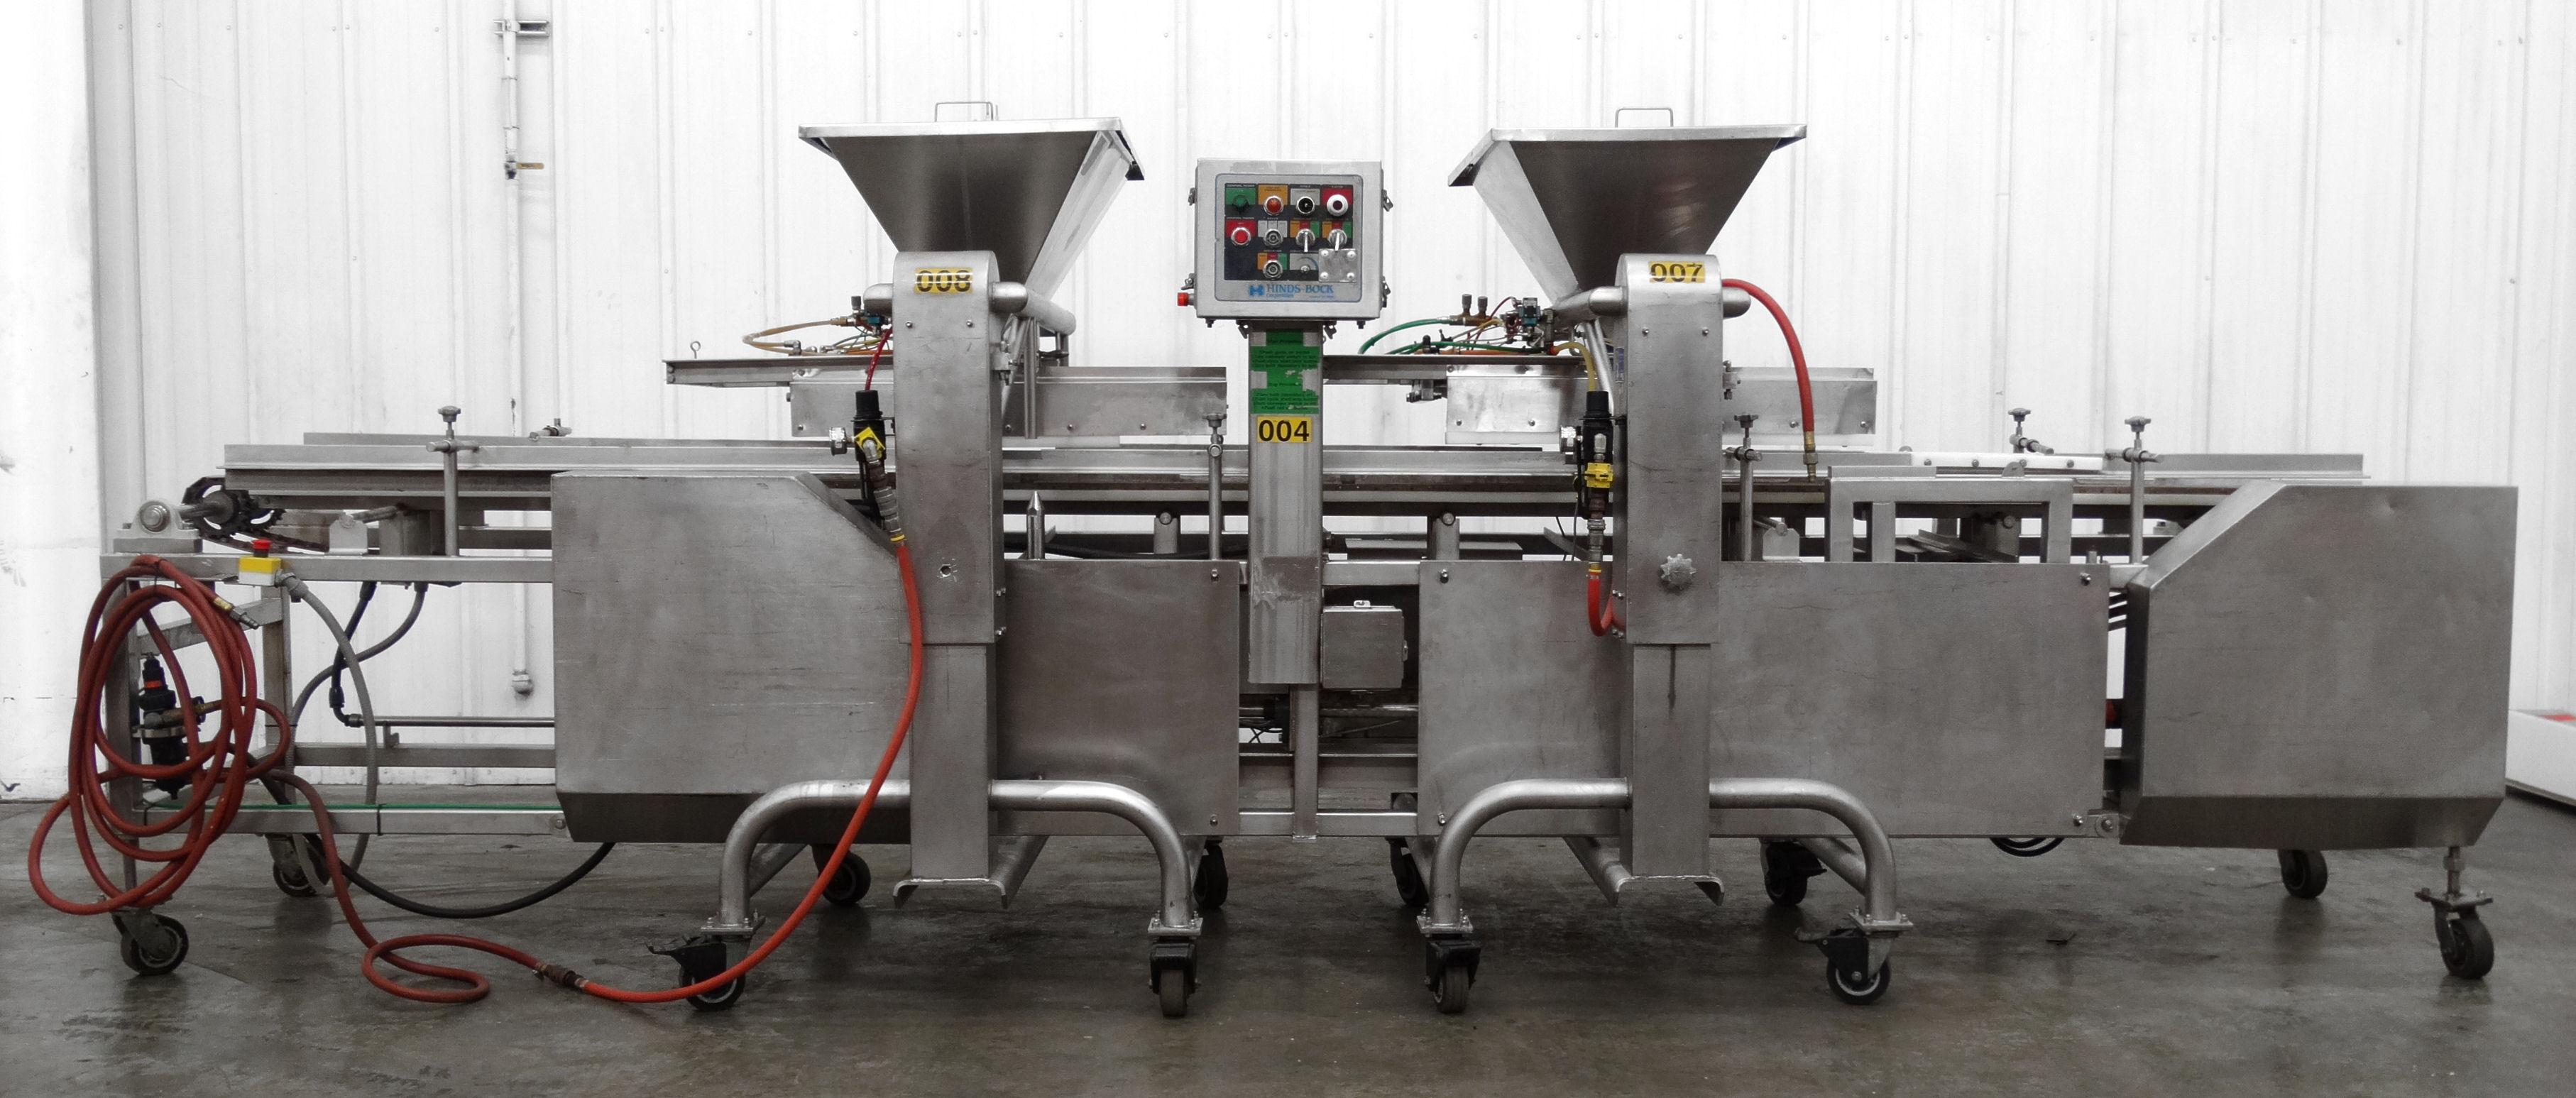 Hinds-Bock Dual Depositor 4P-04 Cheesecake Line B5001 - Image 2 of 8